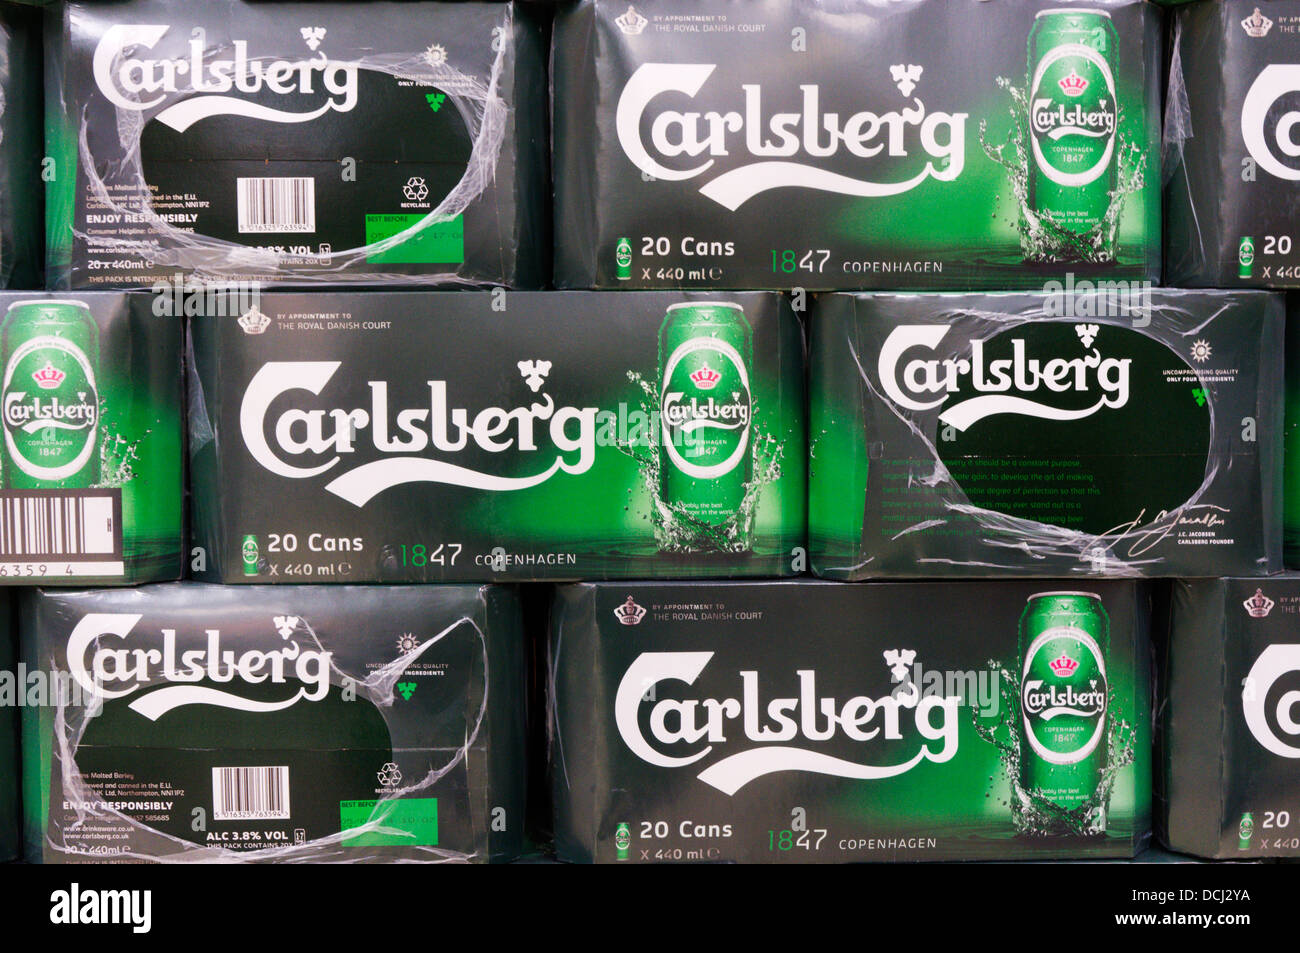 Boxes of Carlsberg beer cans stacked in a supermarket. - Stock Image